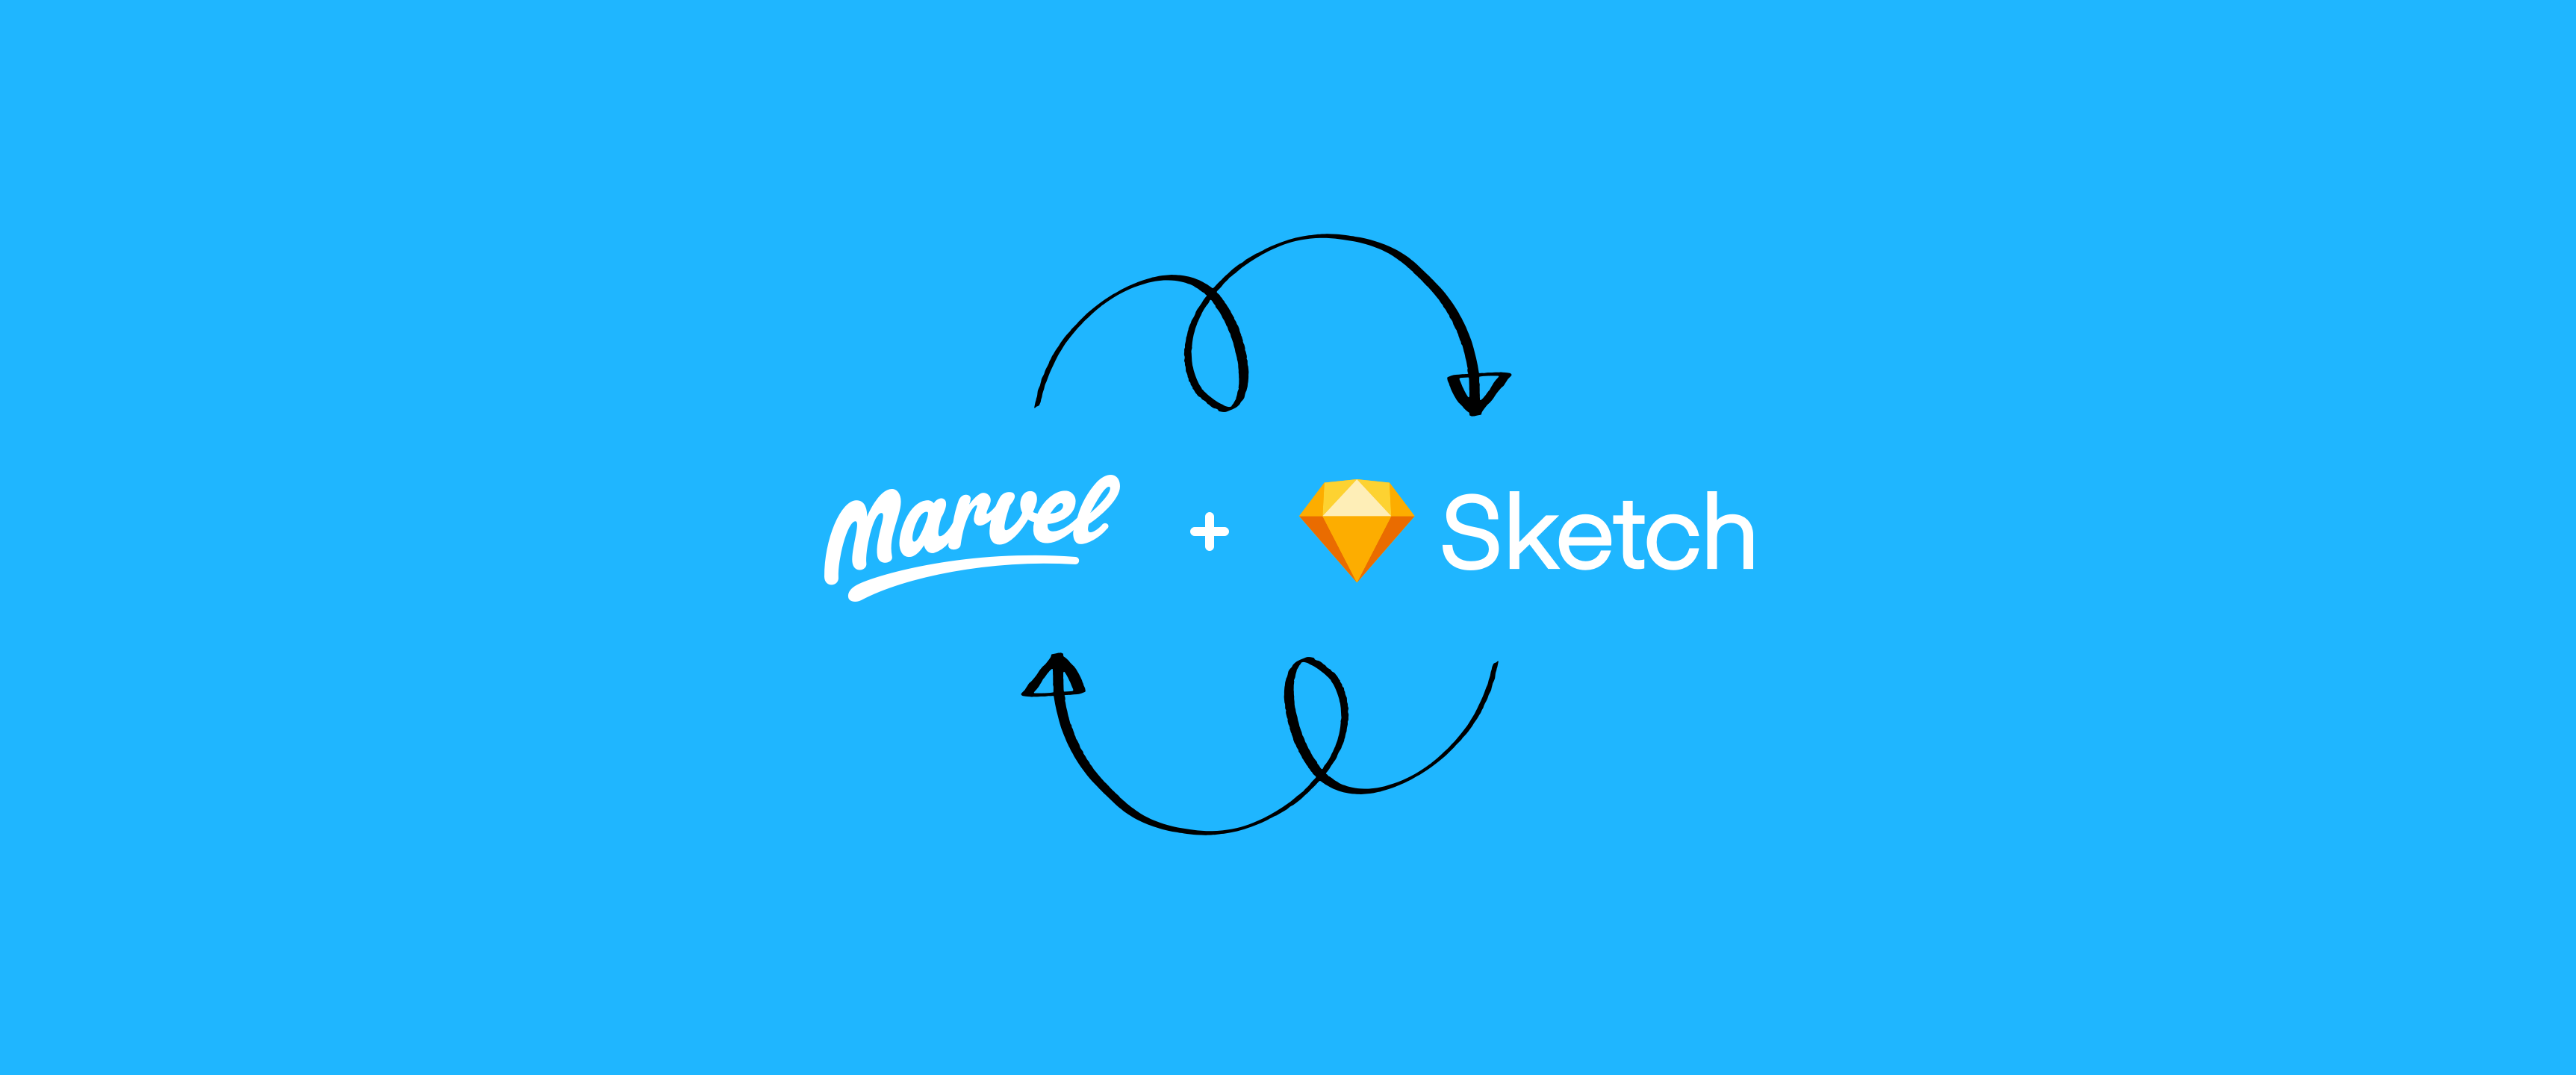 Grab the latest update to our Sketch plugin